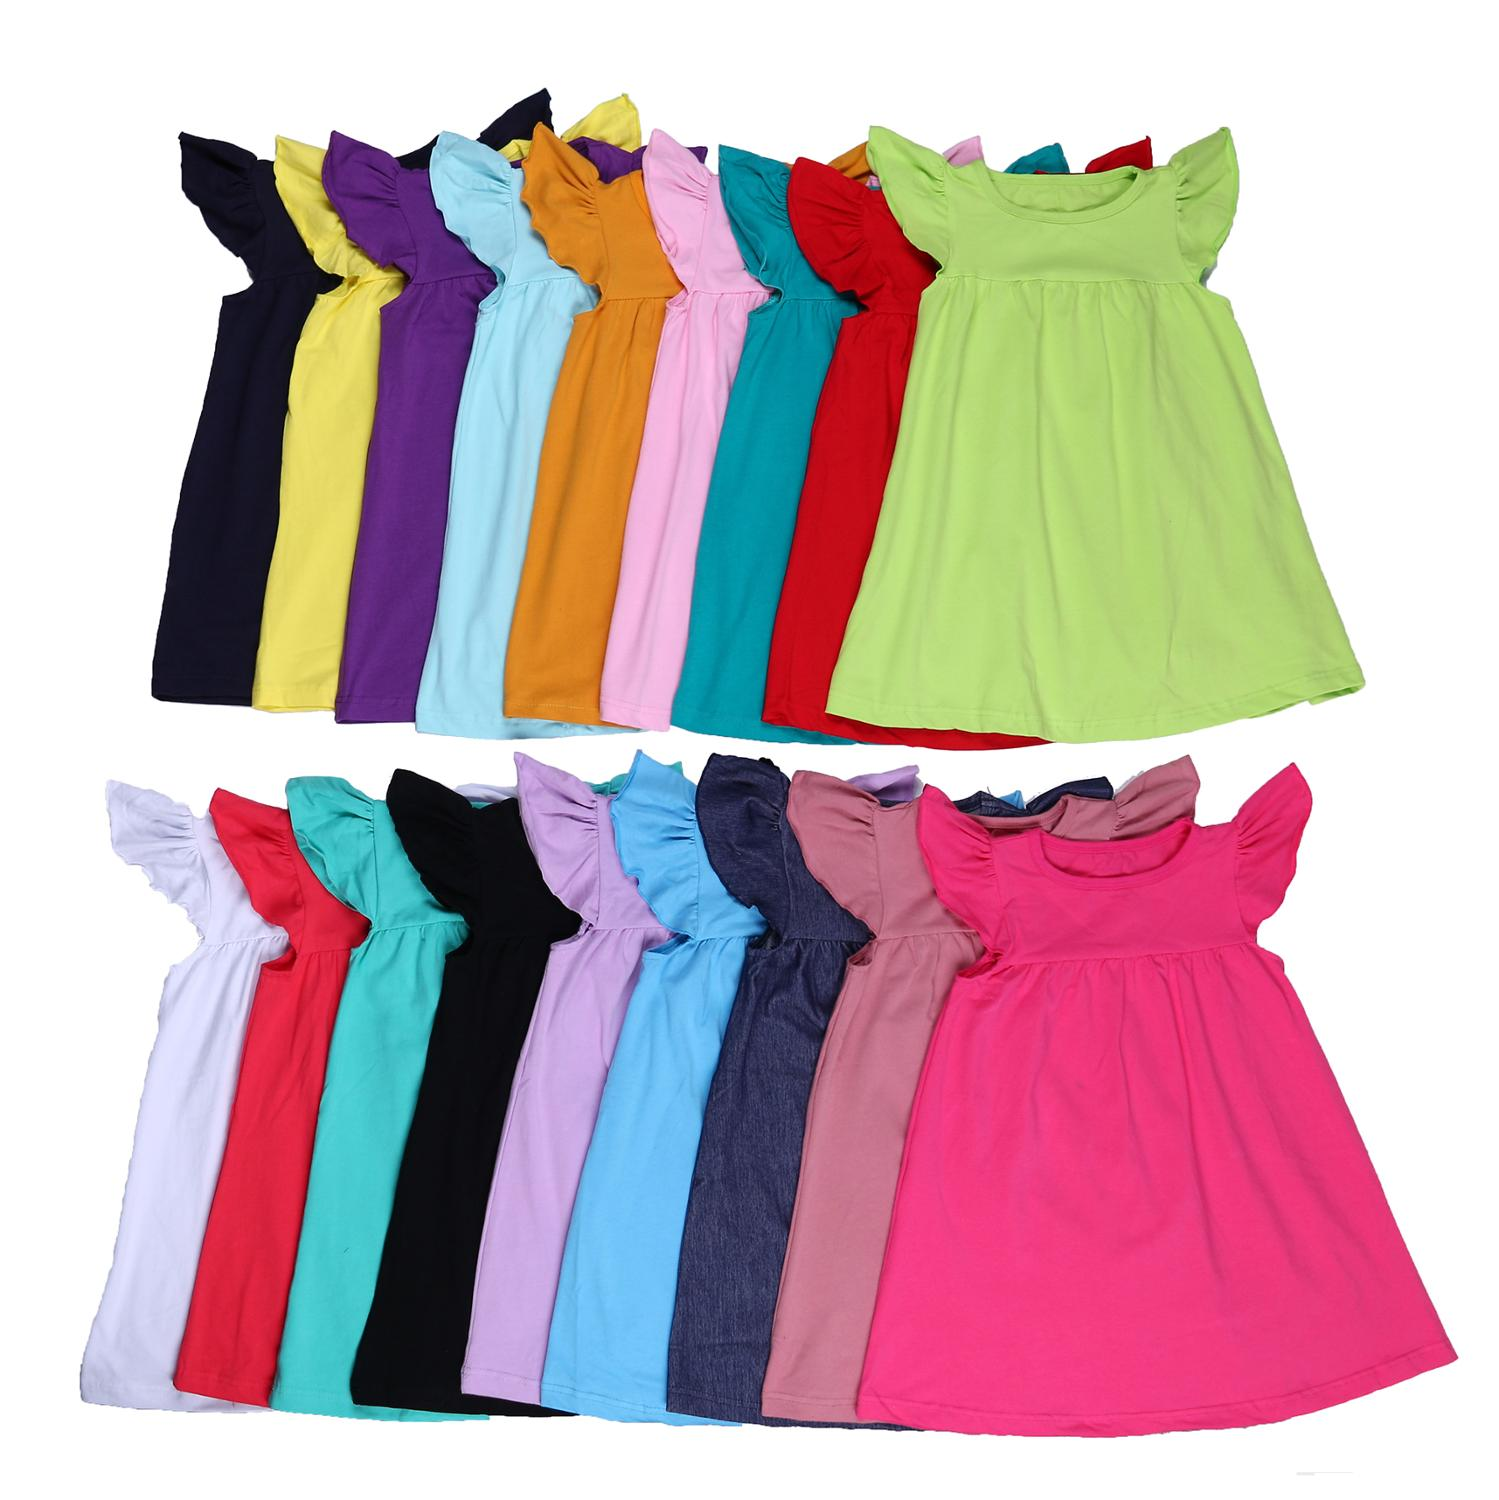 100% Cotton Summer Simple Solid Color Toddler Flutter Sleeve Little Baby Girls Pearls Dress